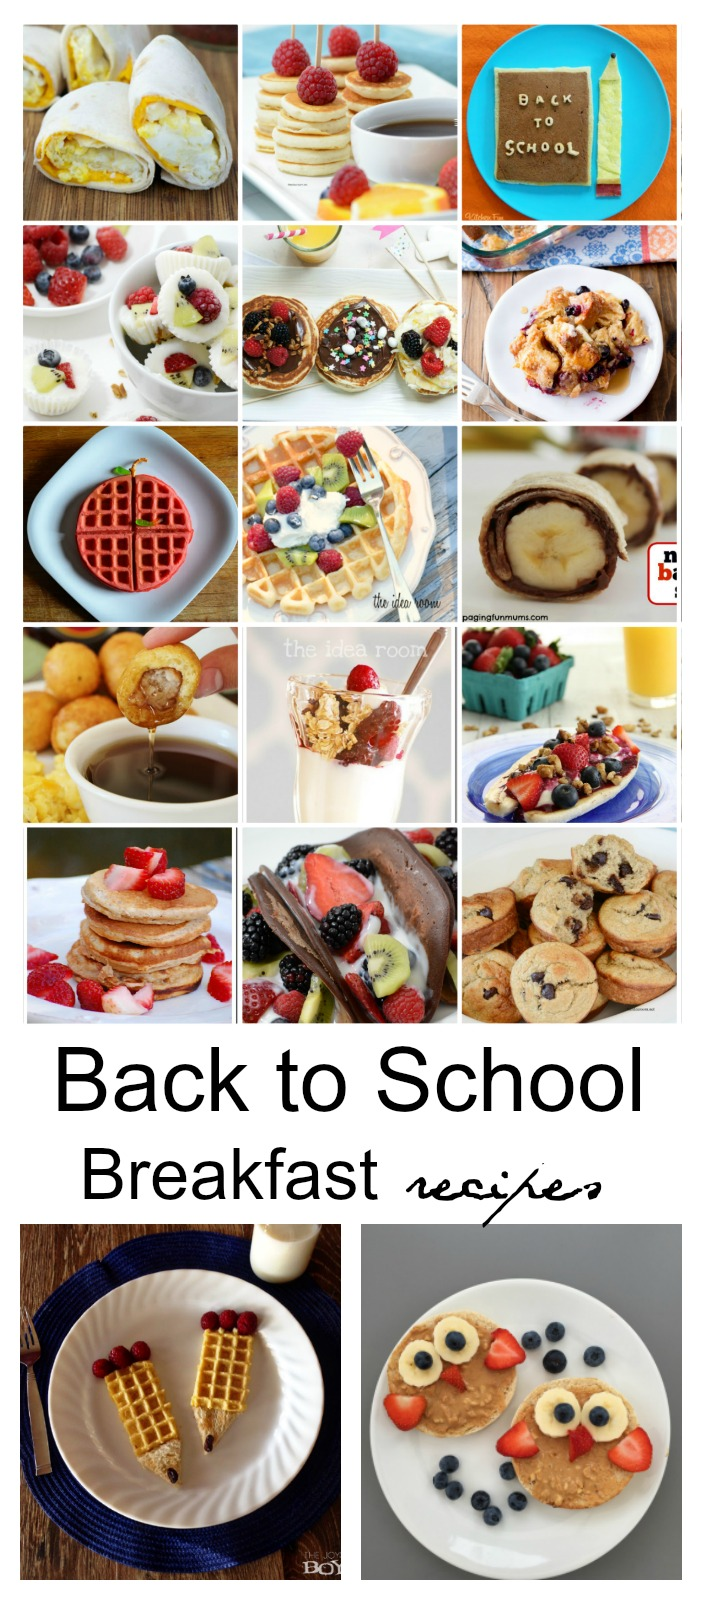 Back-to-school-Breakfast-Recipes-Ideas